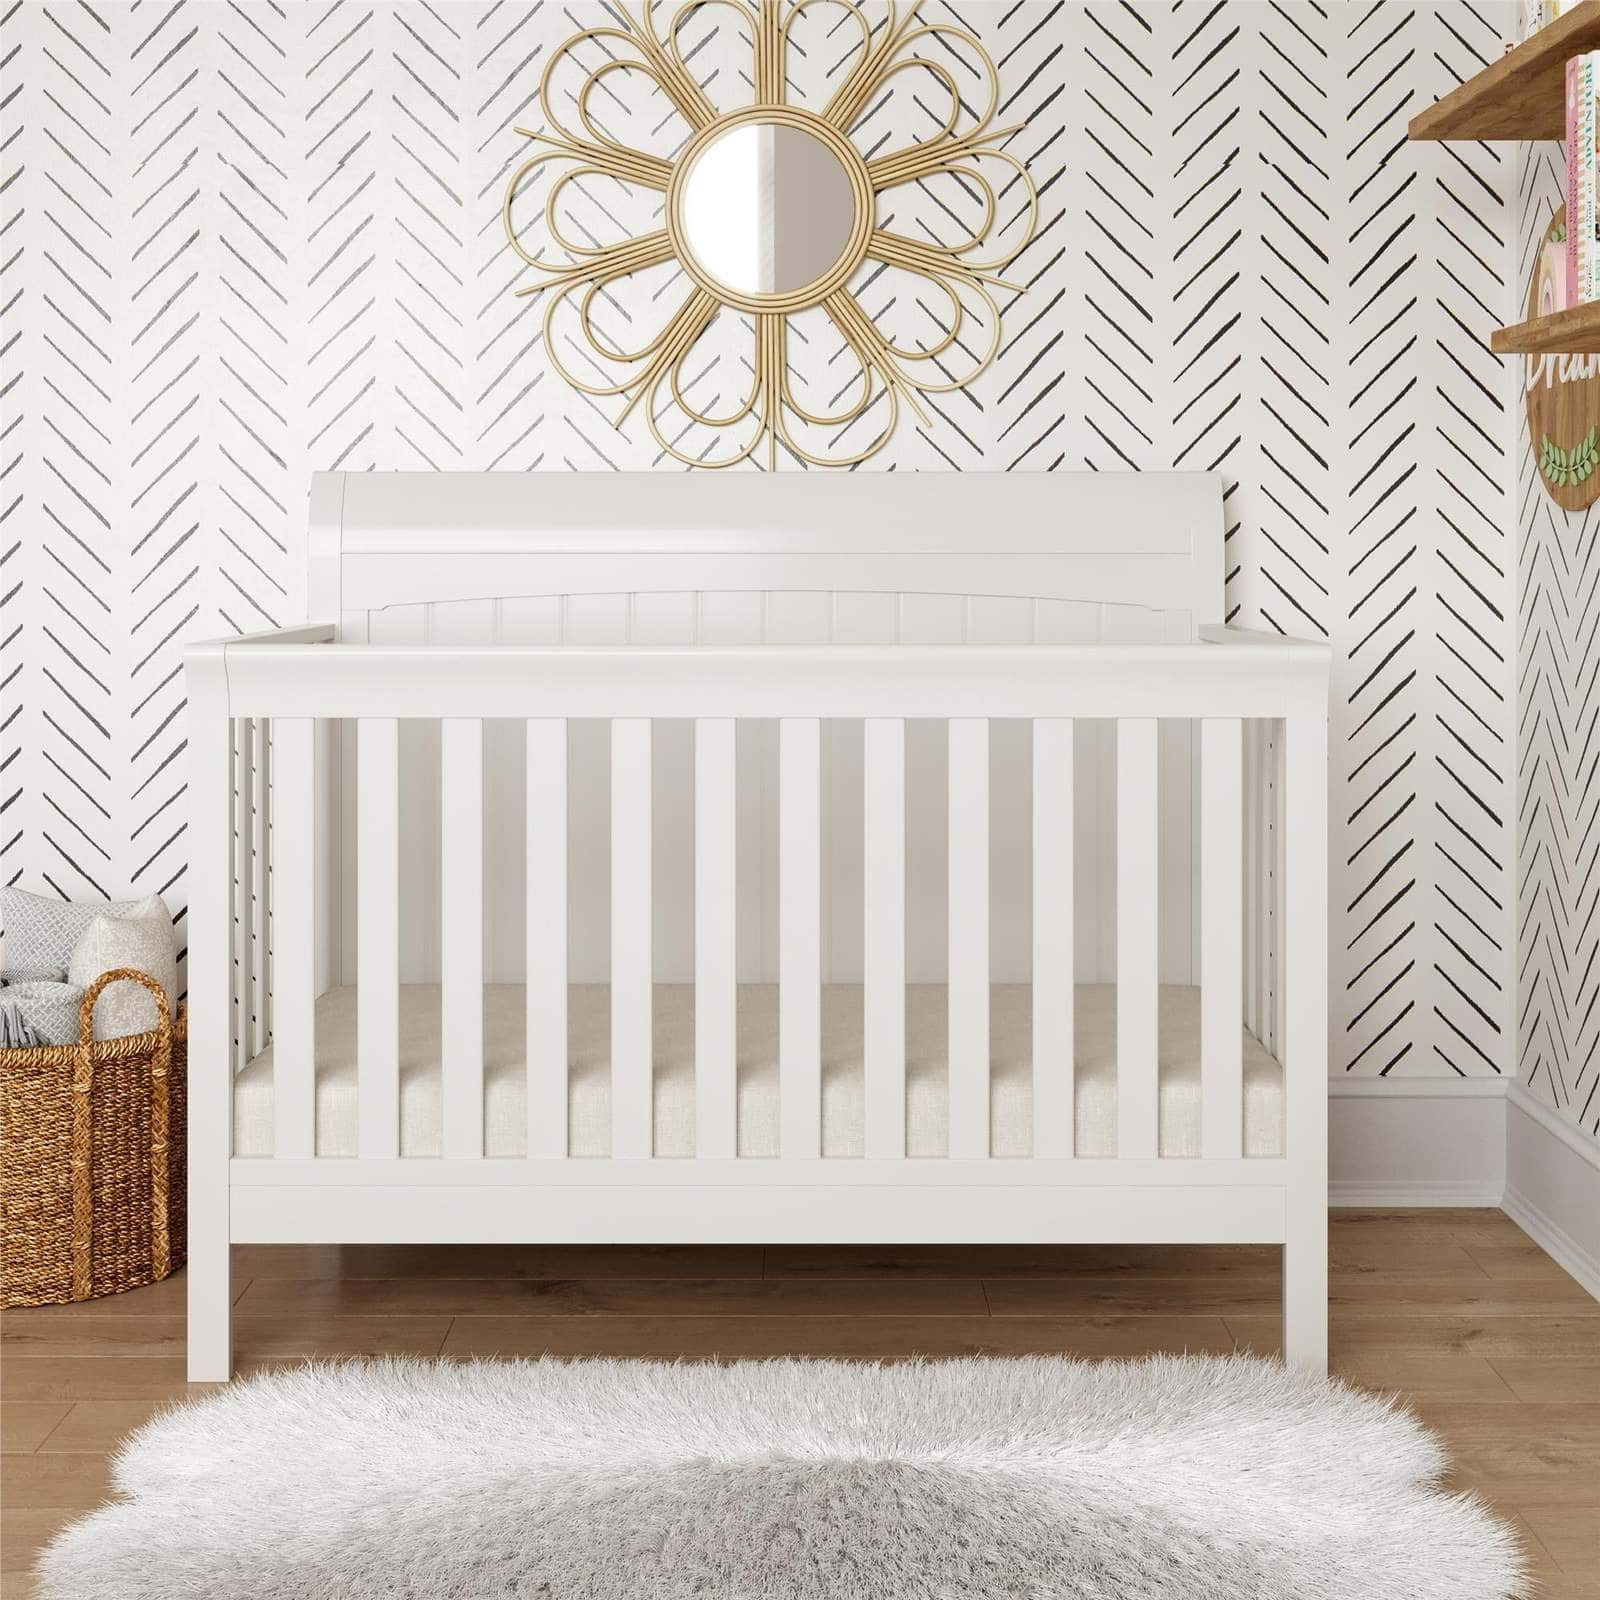 A Convertible Crib Sleigh Bed That Will Grow With Your Baby